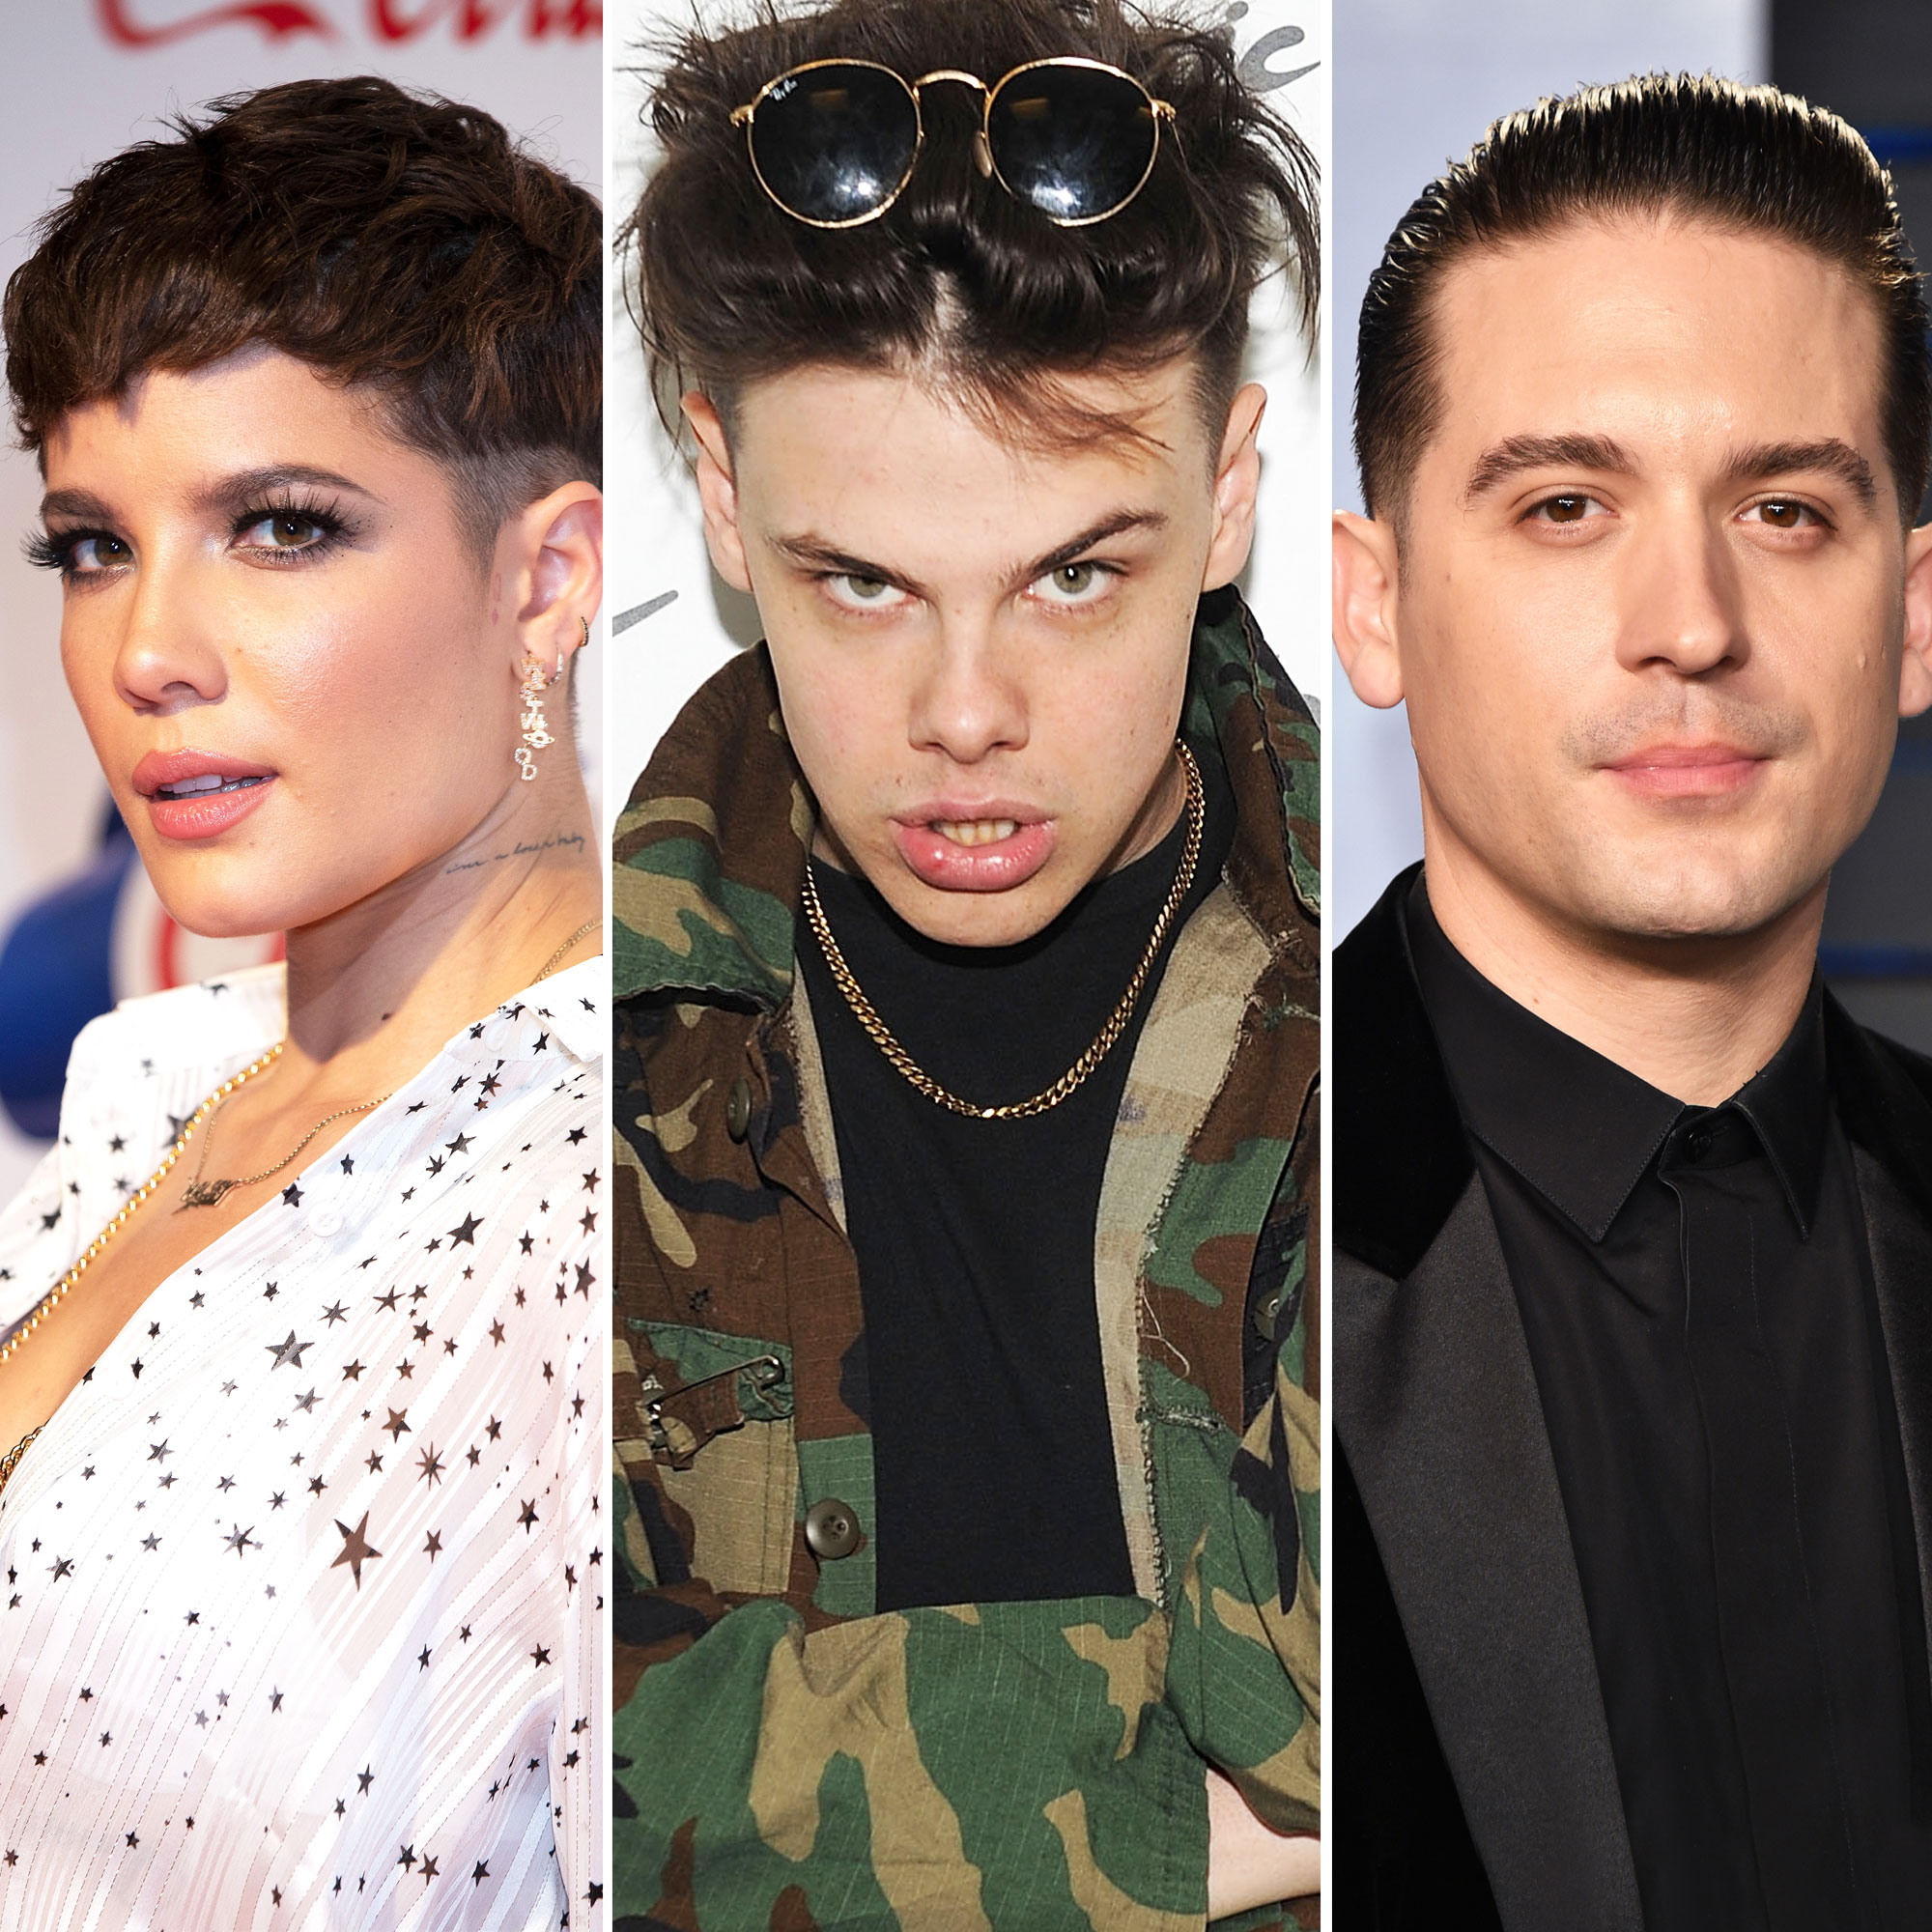 Halsey Goes Instagram Official With Yungblud After G-Eazy Split